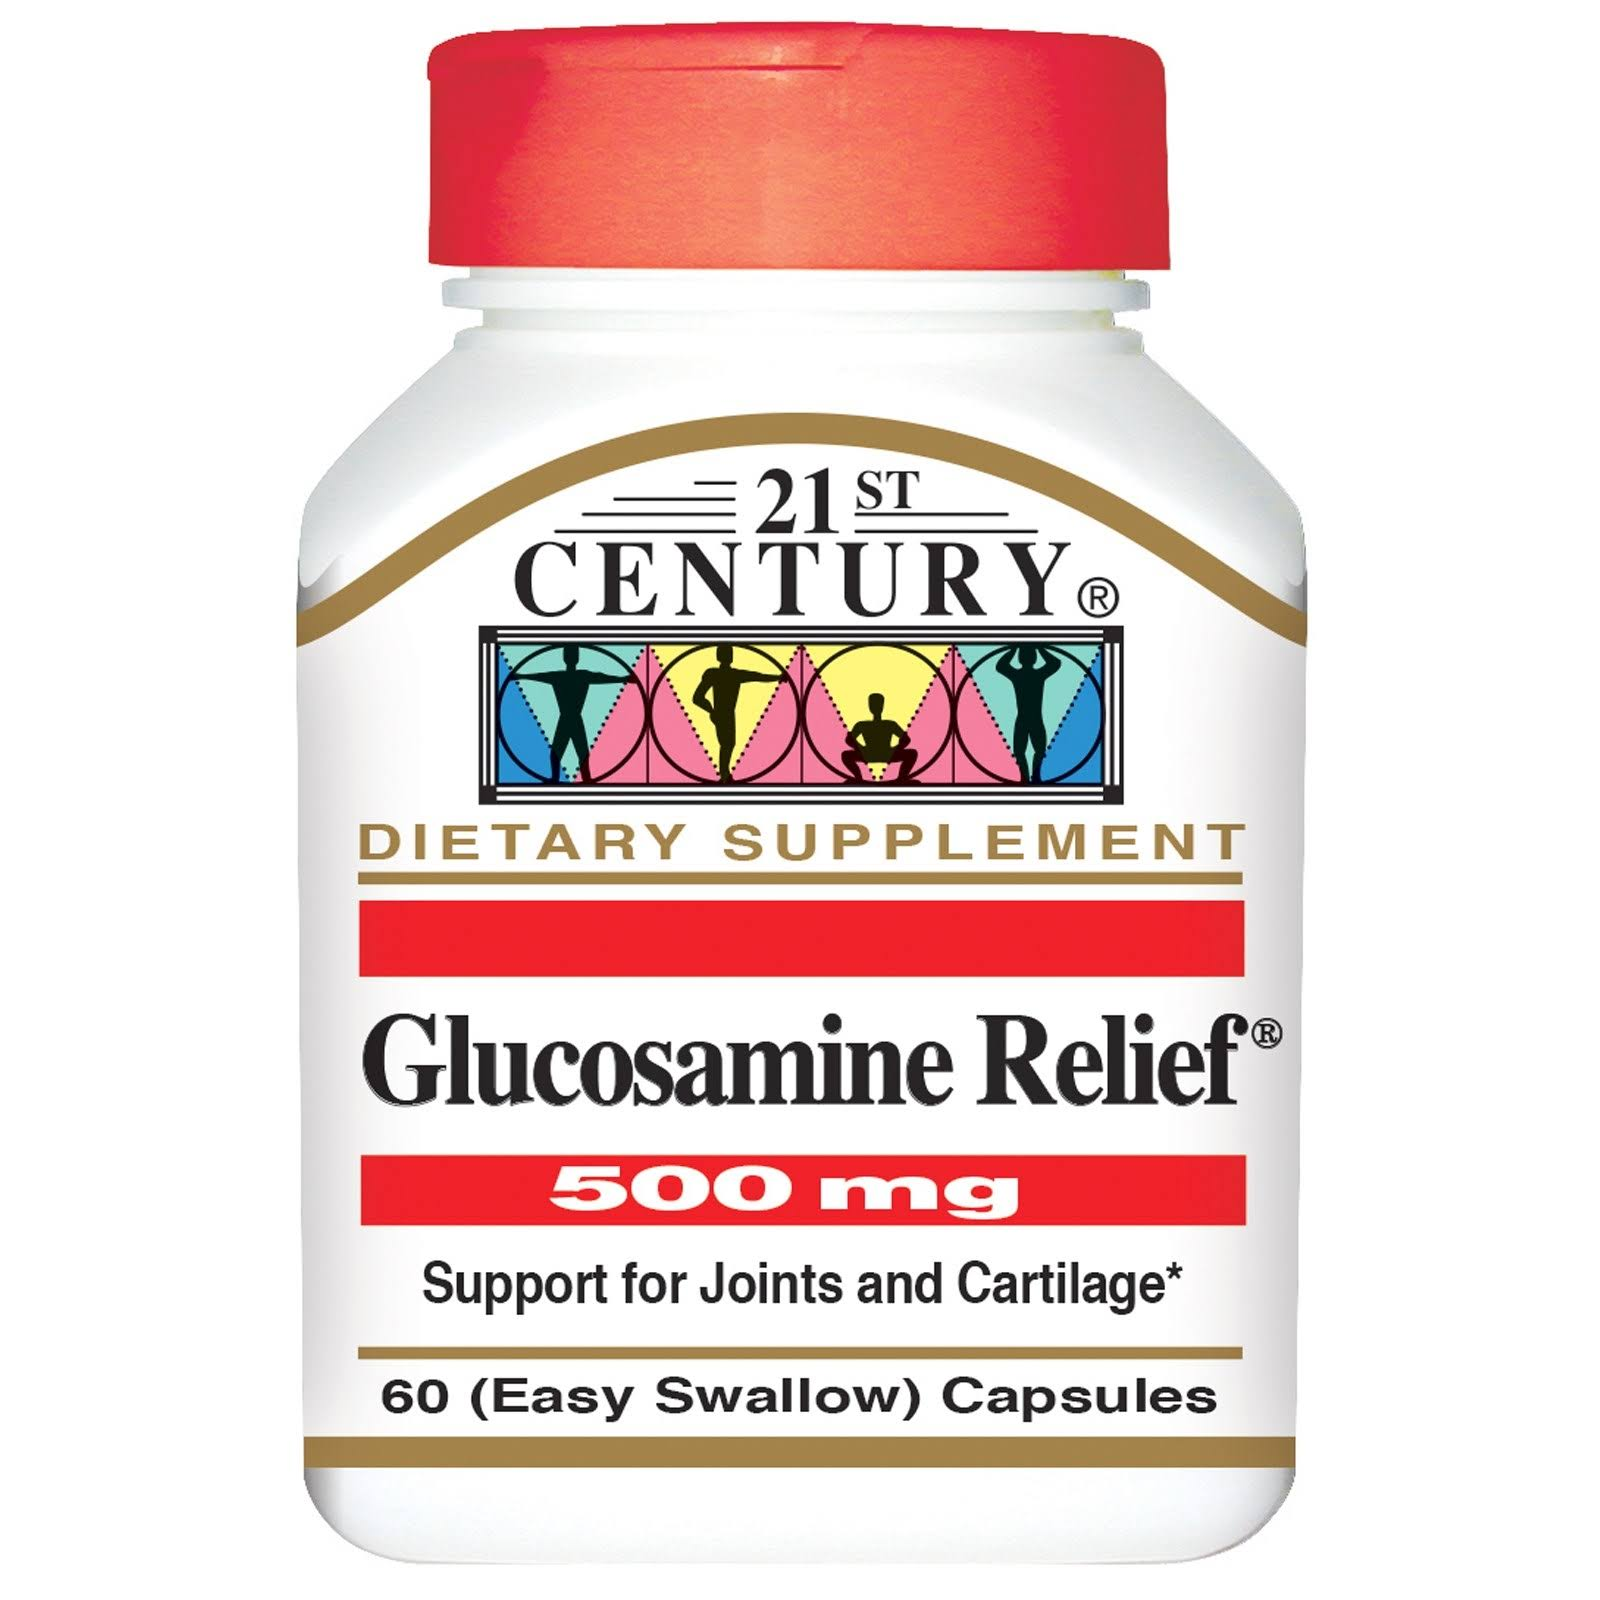 21st Century Glucosamine Relief Supplements - 500mg, 60ct